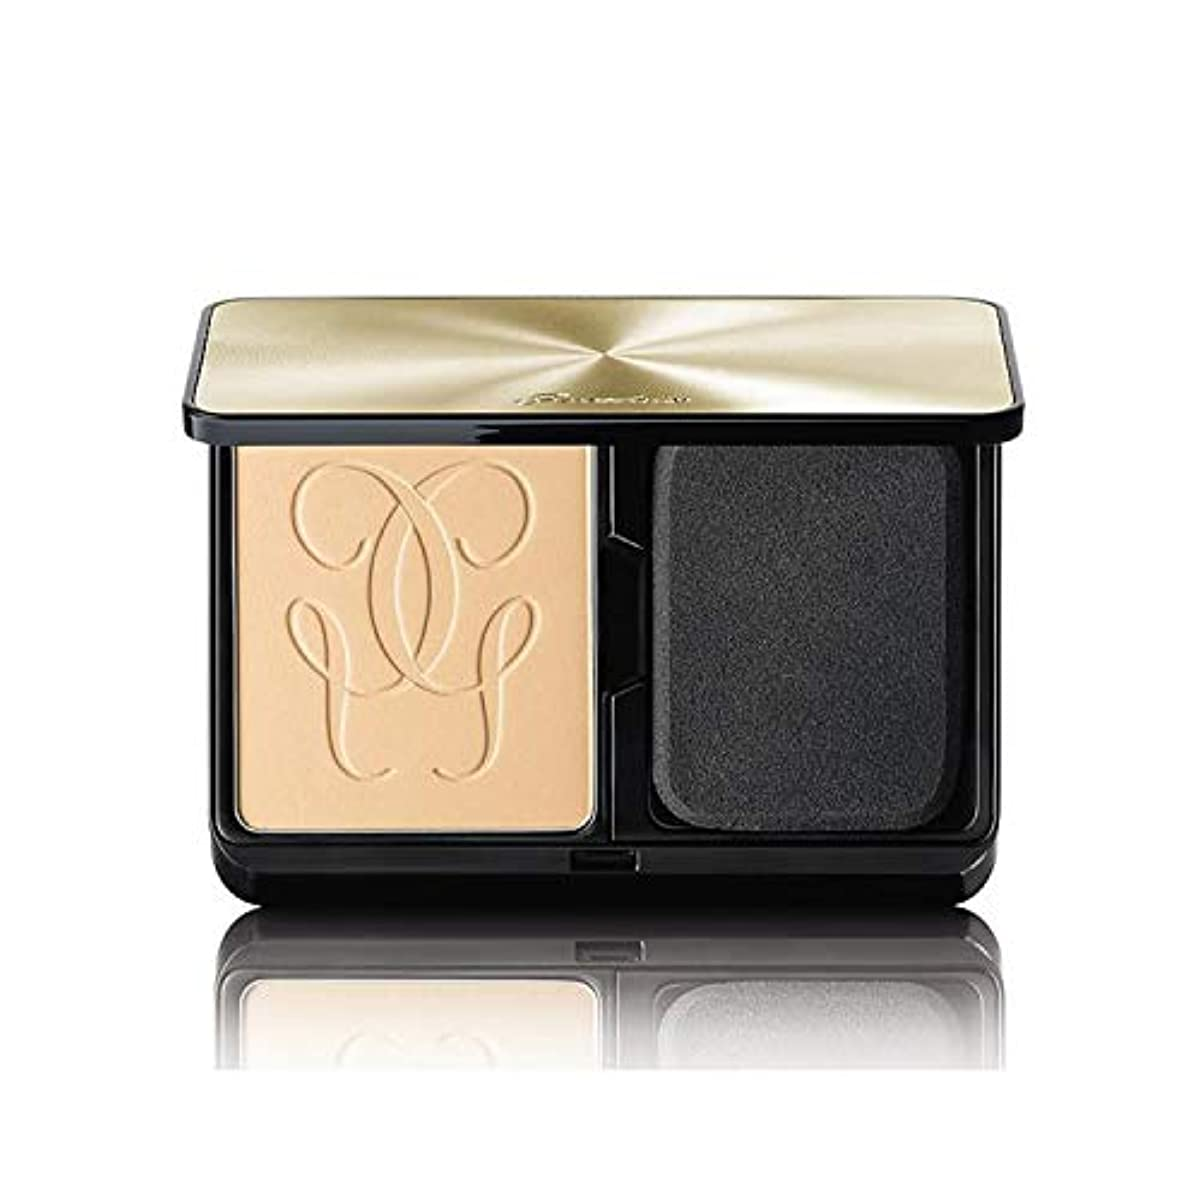 大理石追うオアシスゲラン Lingerie De Peau Mat Alive Buildable Compact Powder Foundation SPF 15 - # 01N Very Light 8.5g/0.29oz並行輸入品